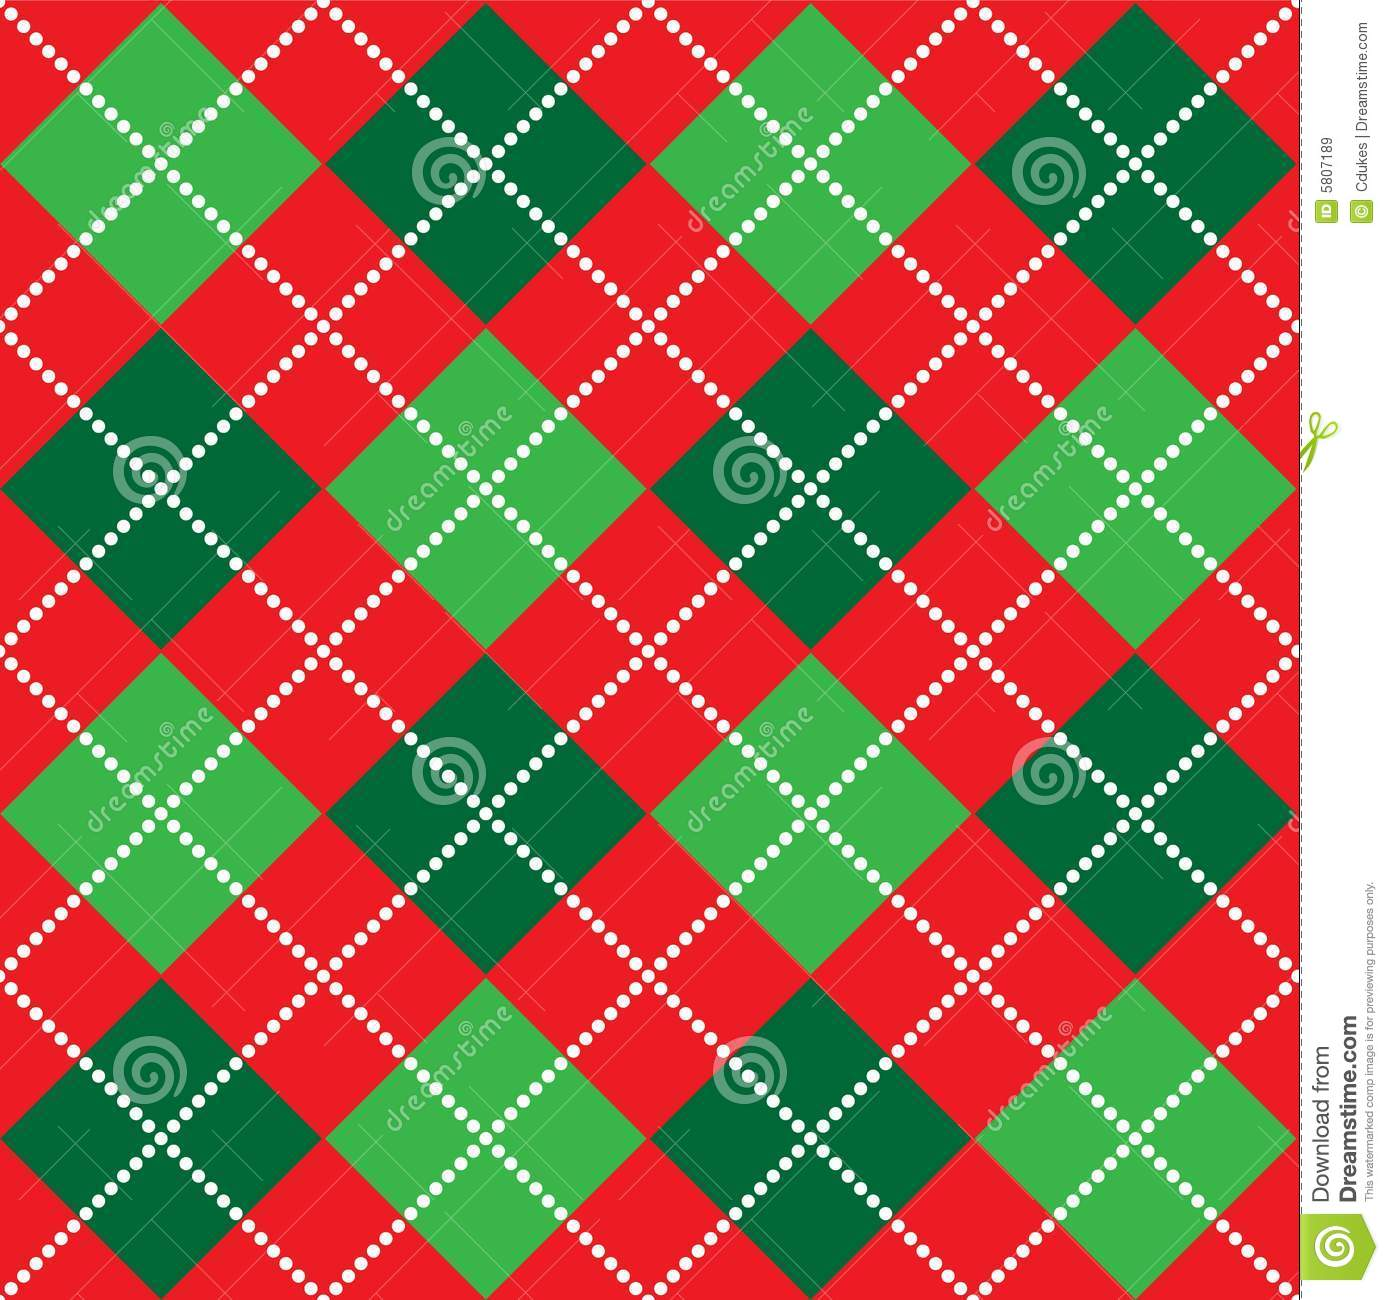 christmas argyle pattern royalty free stock images